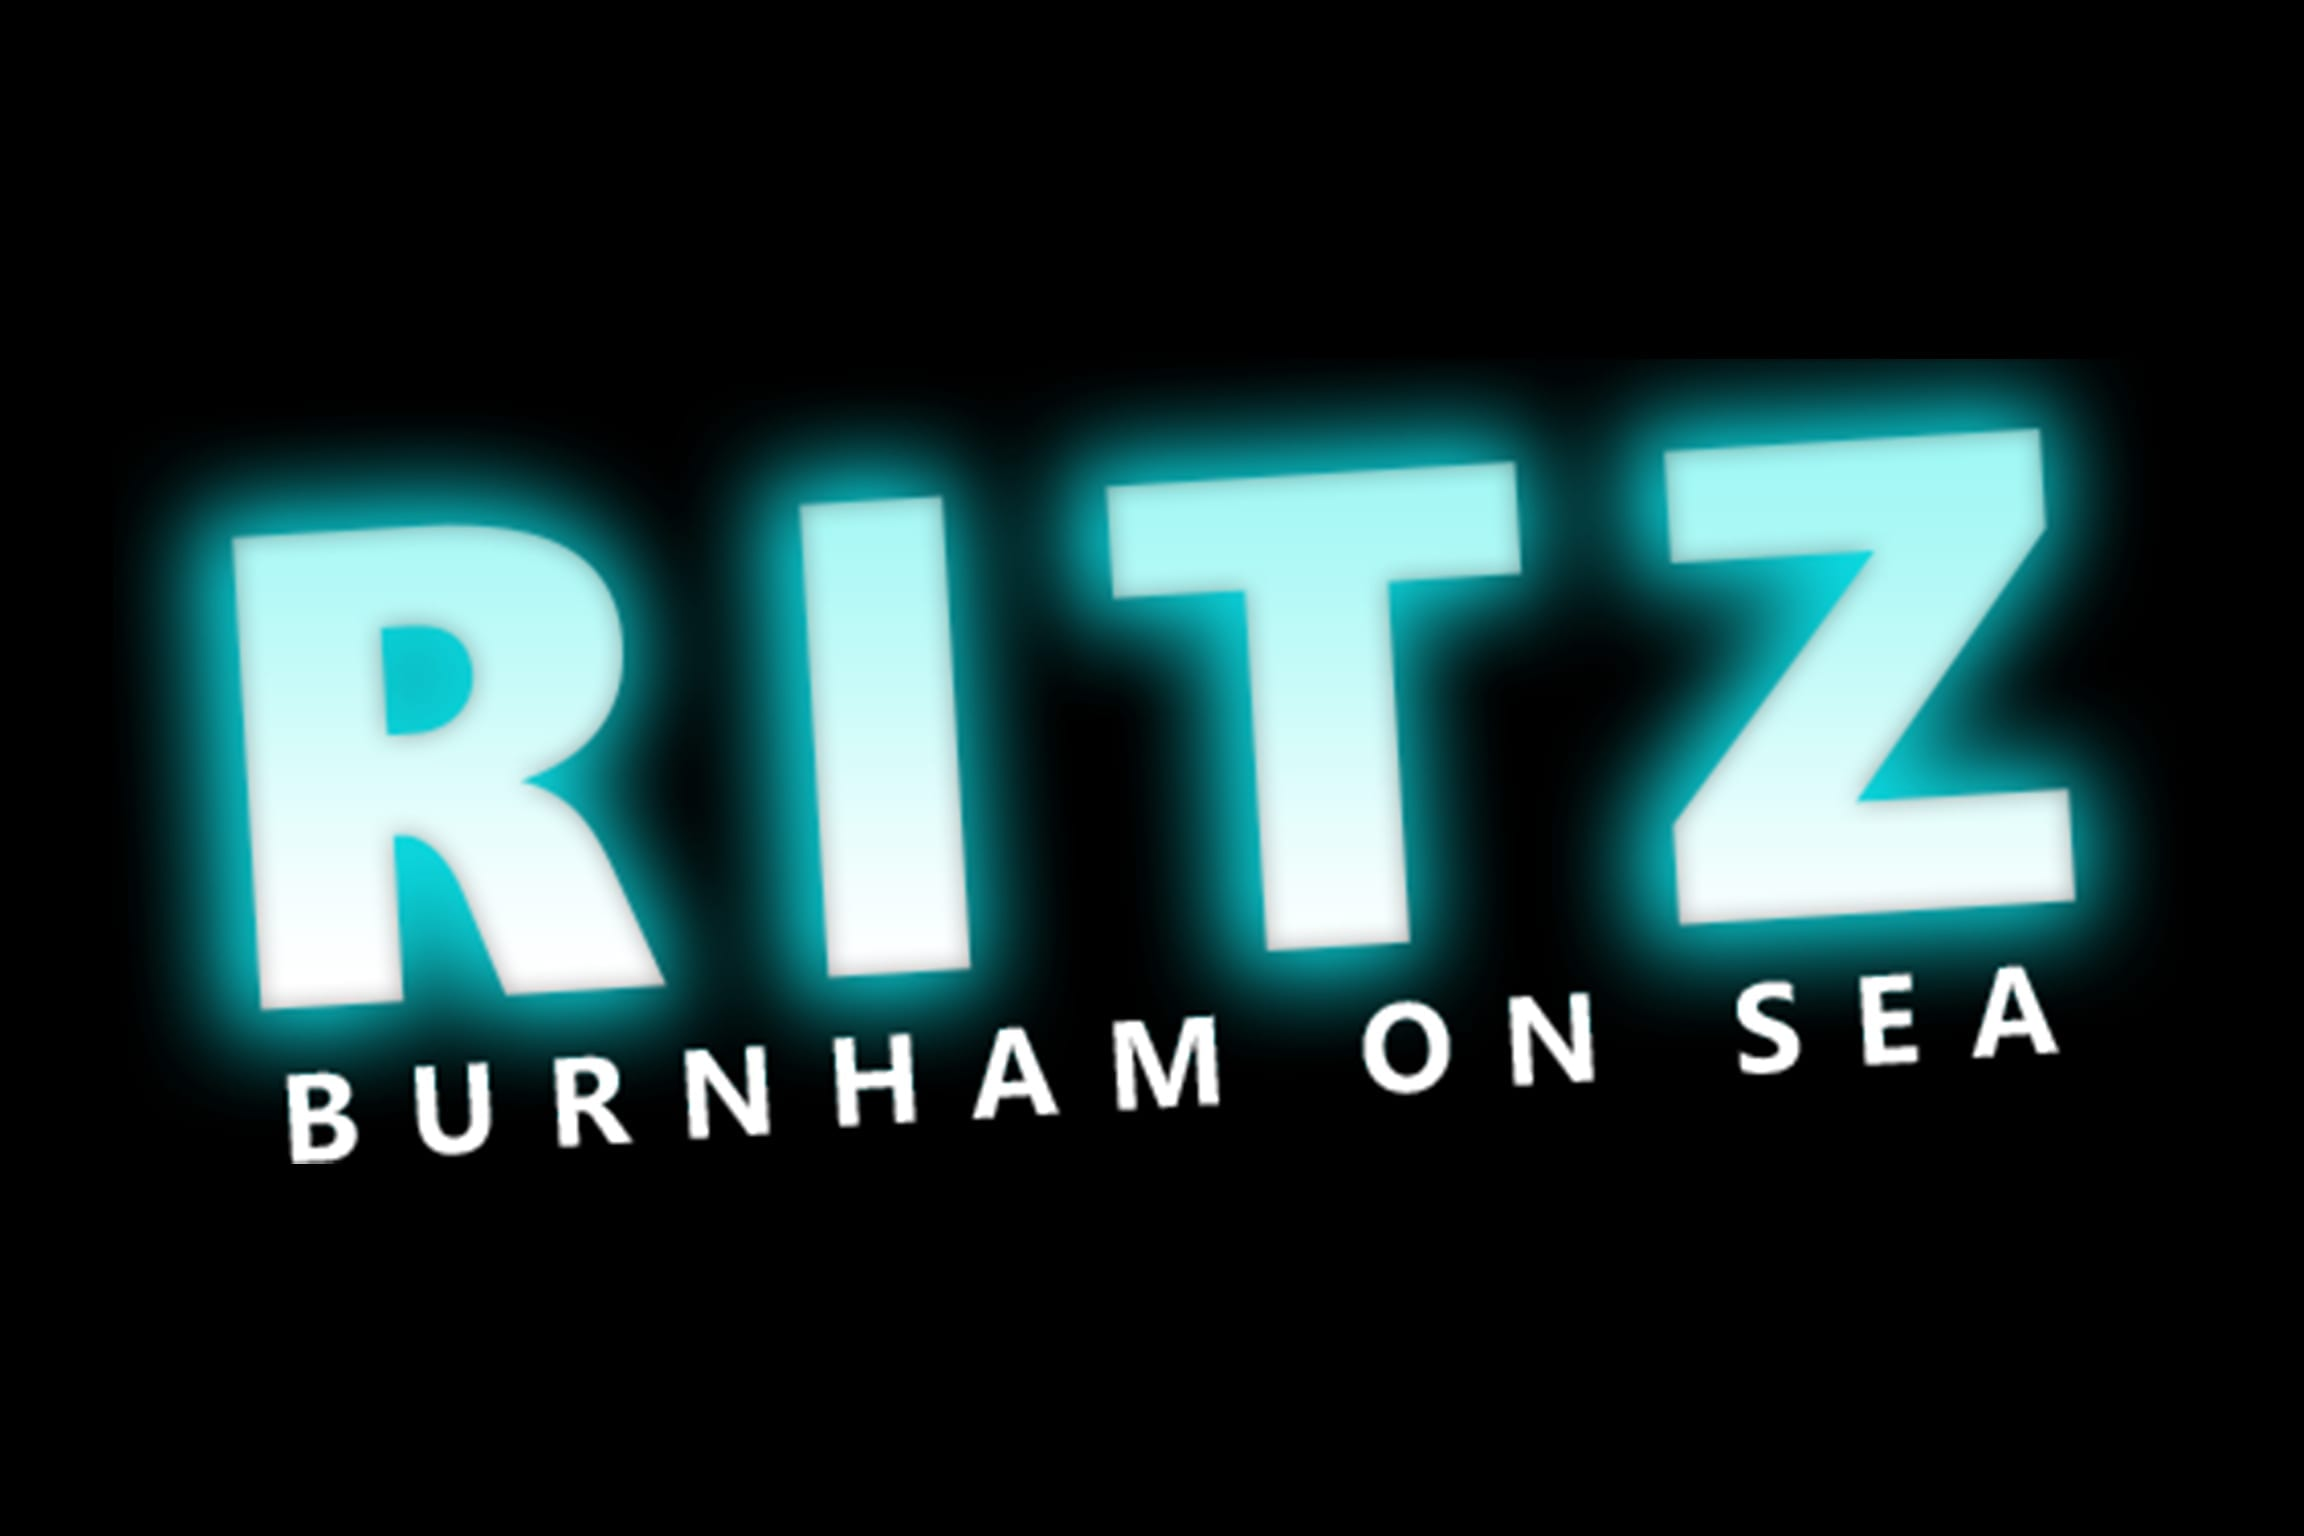 The Ritz Burnham On Sea